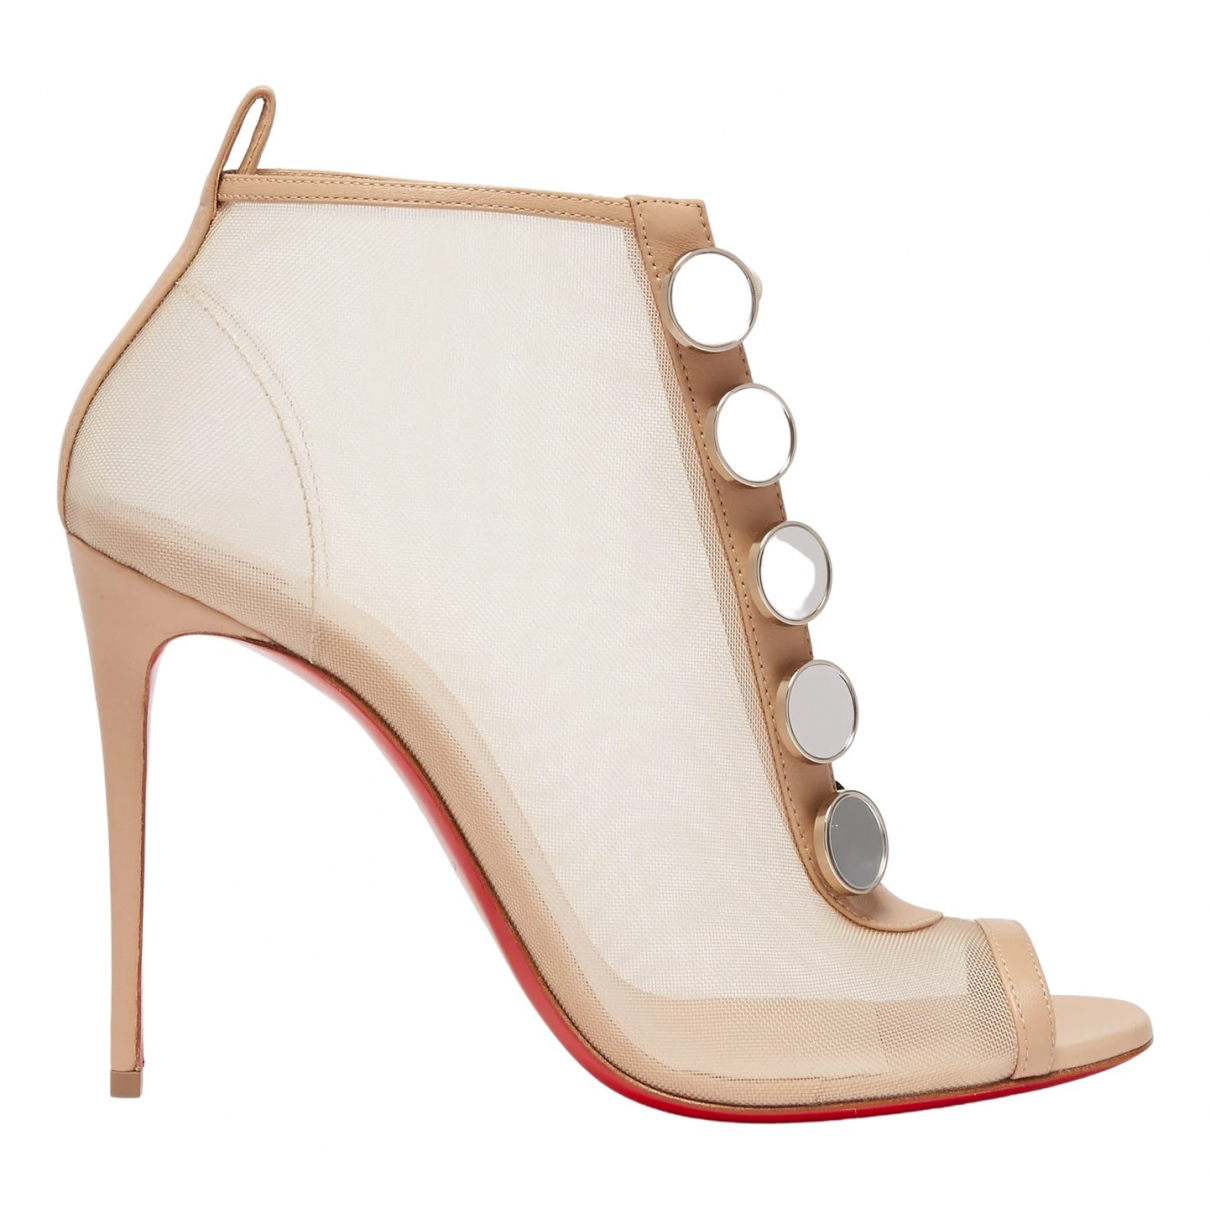 Christian Louboutin \N Beige Cloth Ankle boots for Women 41 EU